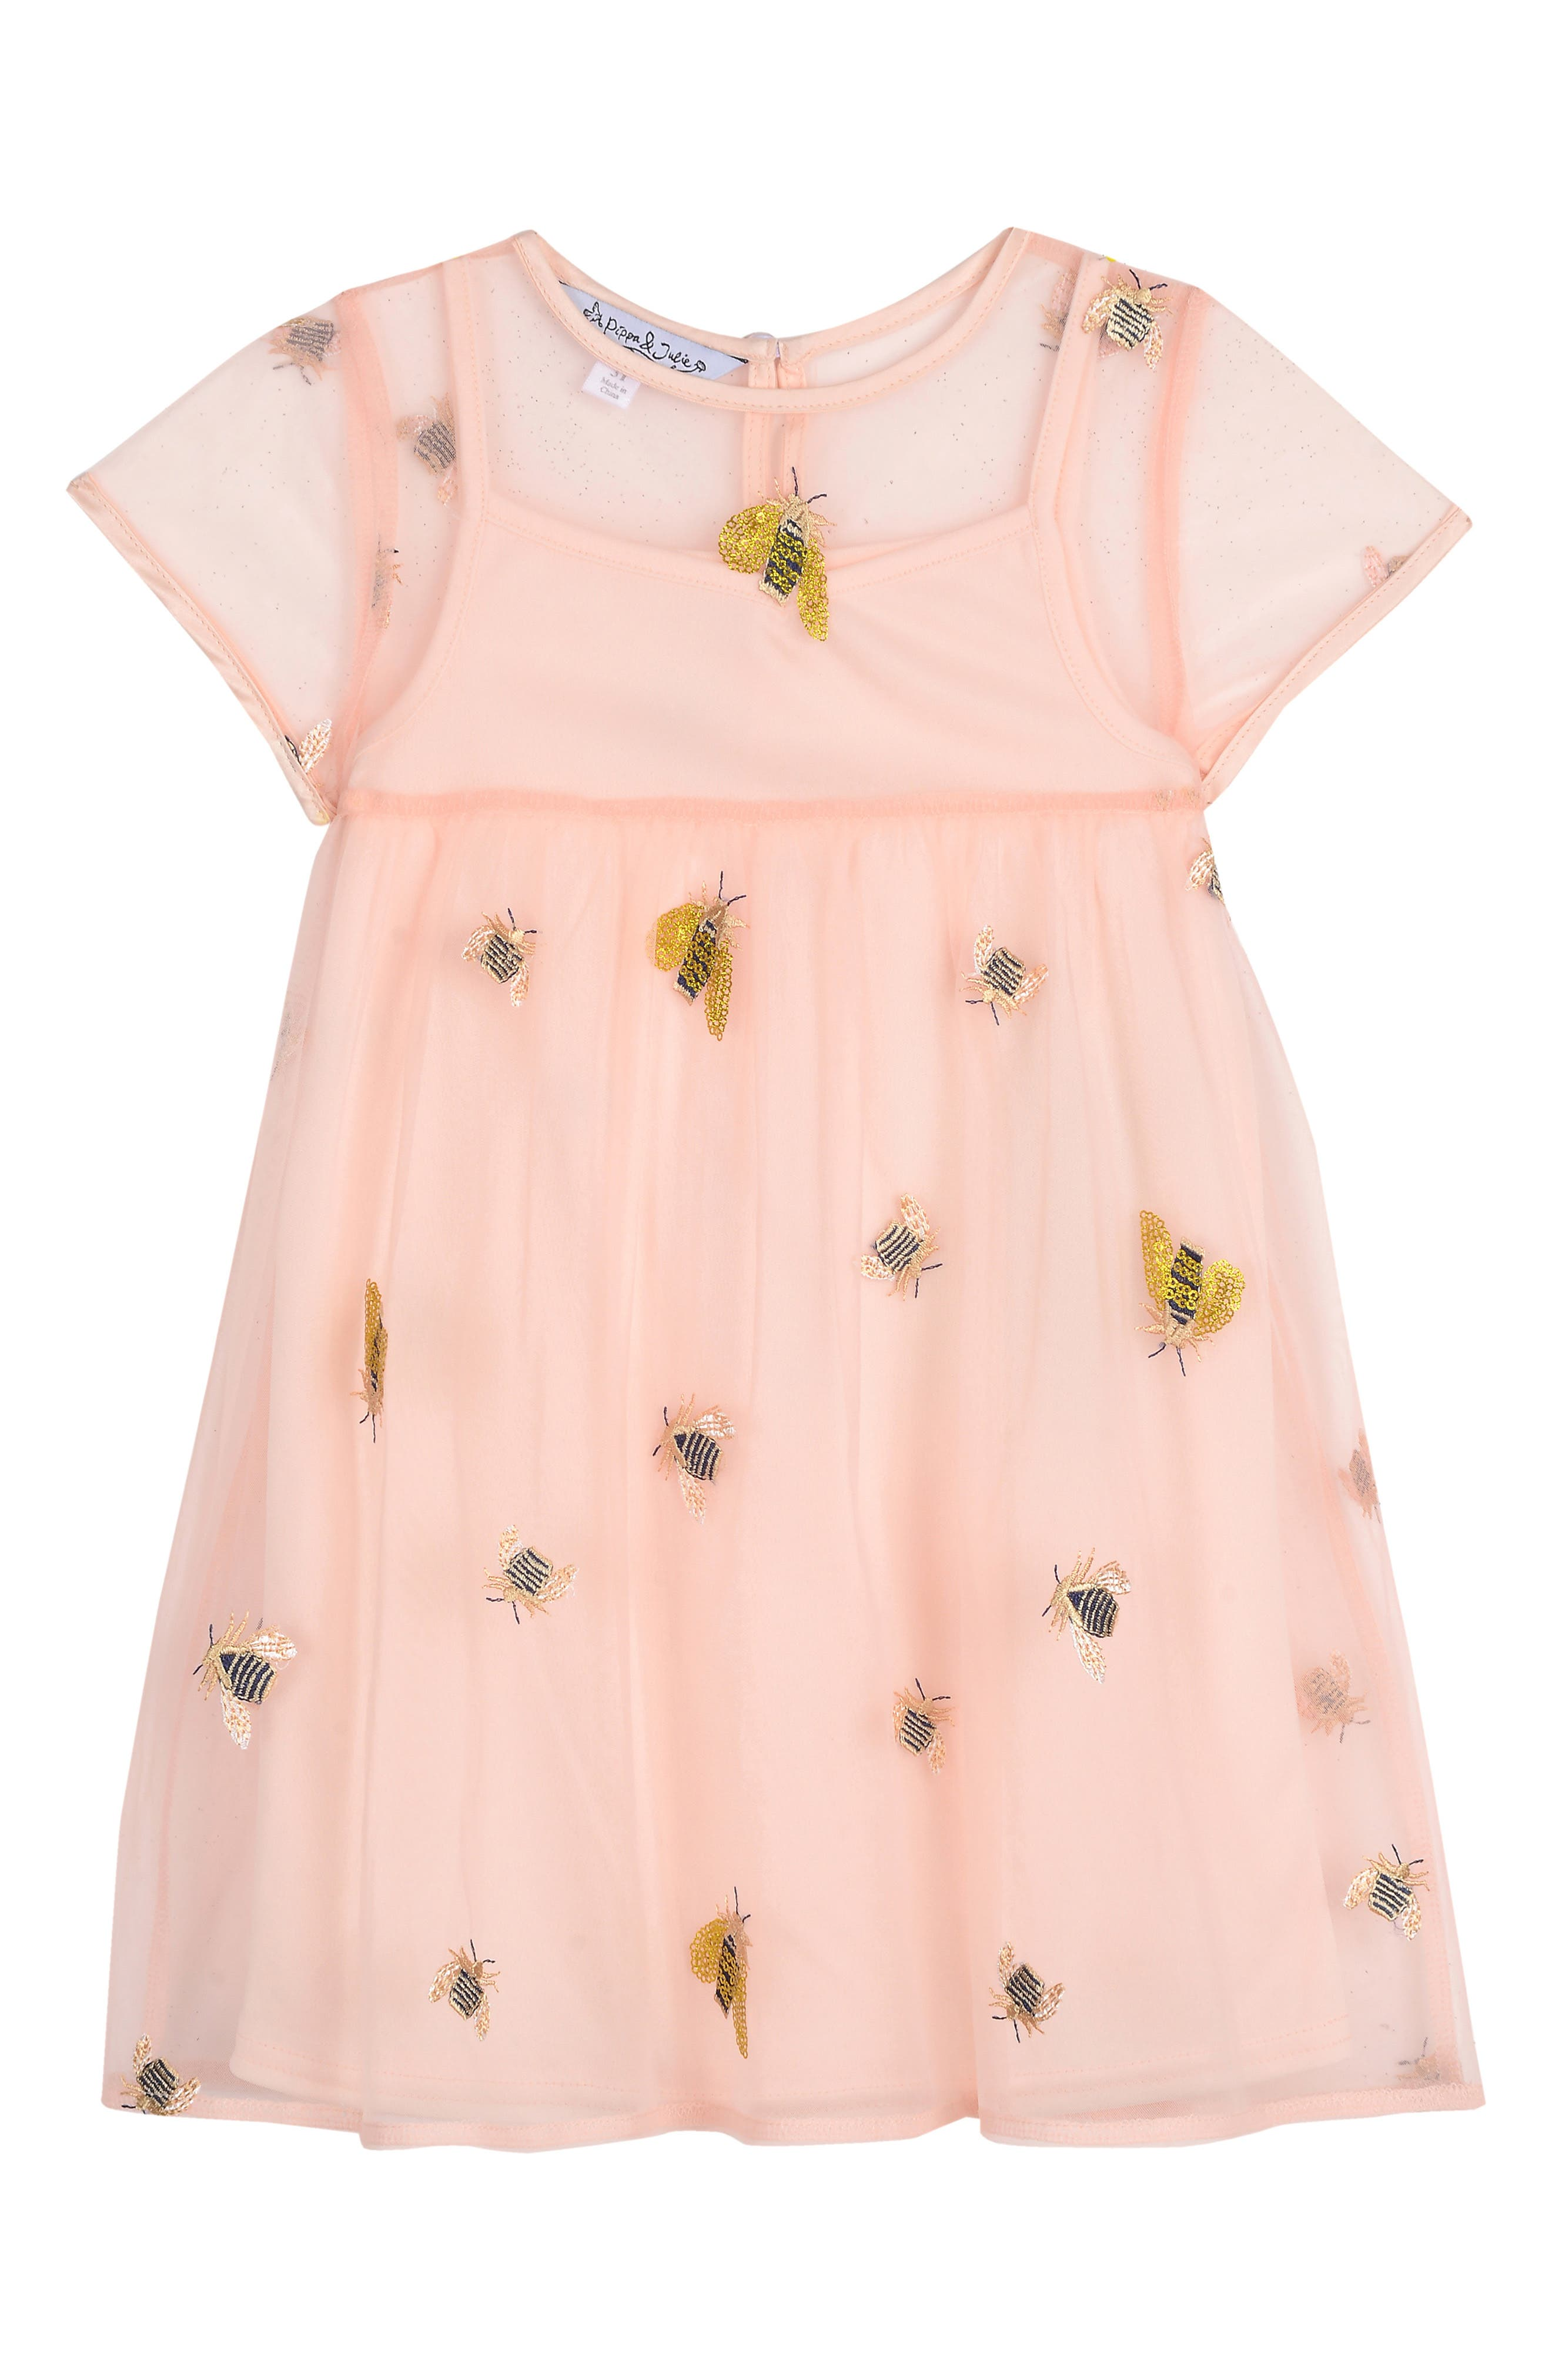 PIPPA & JULIE, Embroidered Bee Dress, Main thumbnail 1, color, PINK UNDERLAY